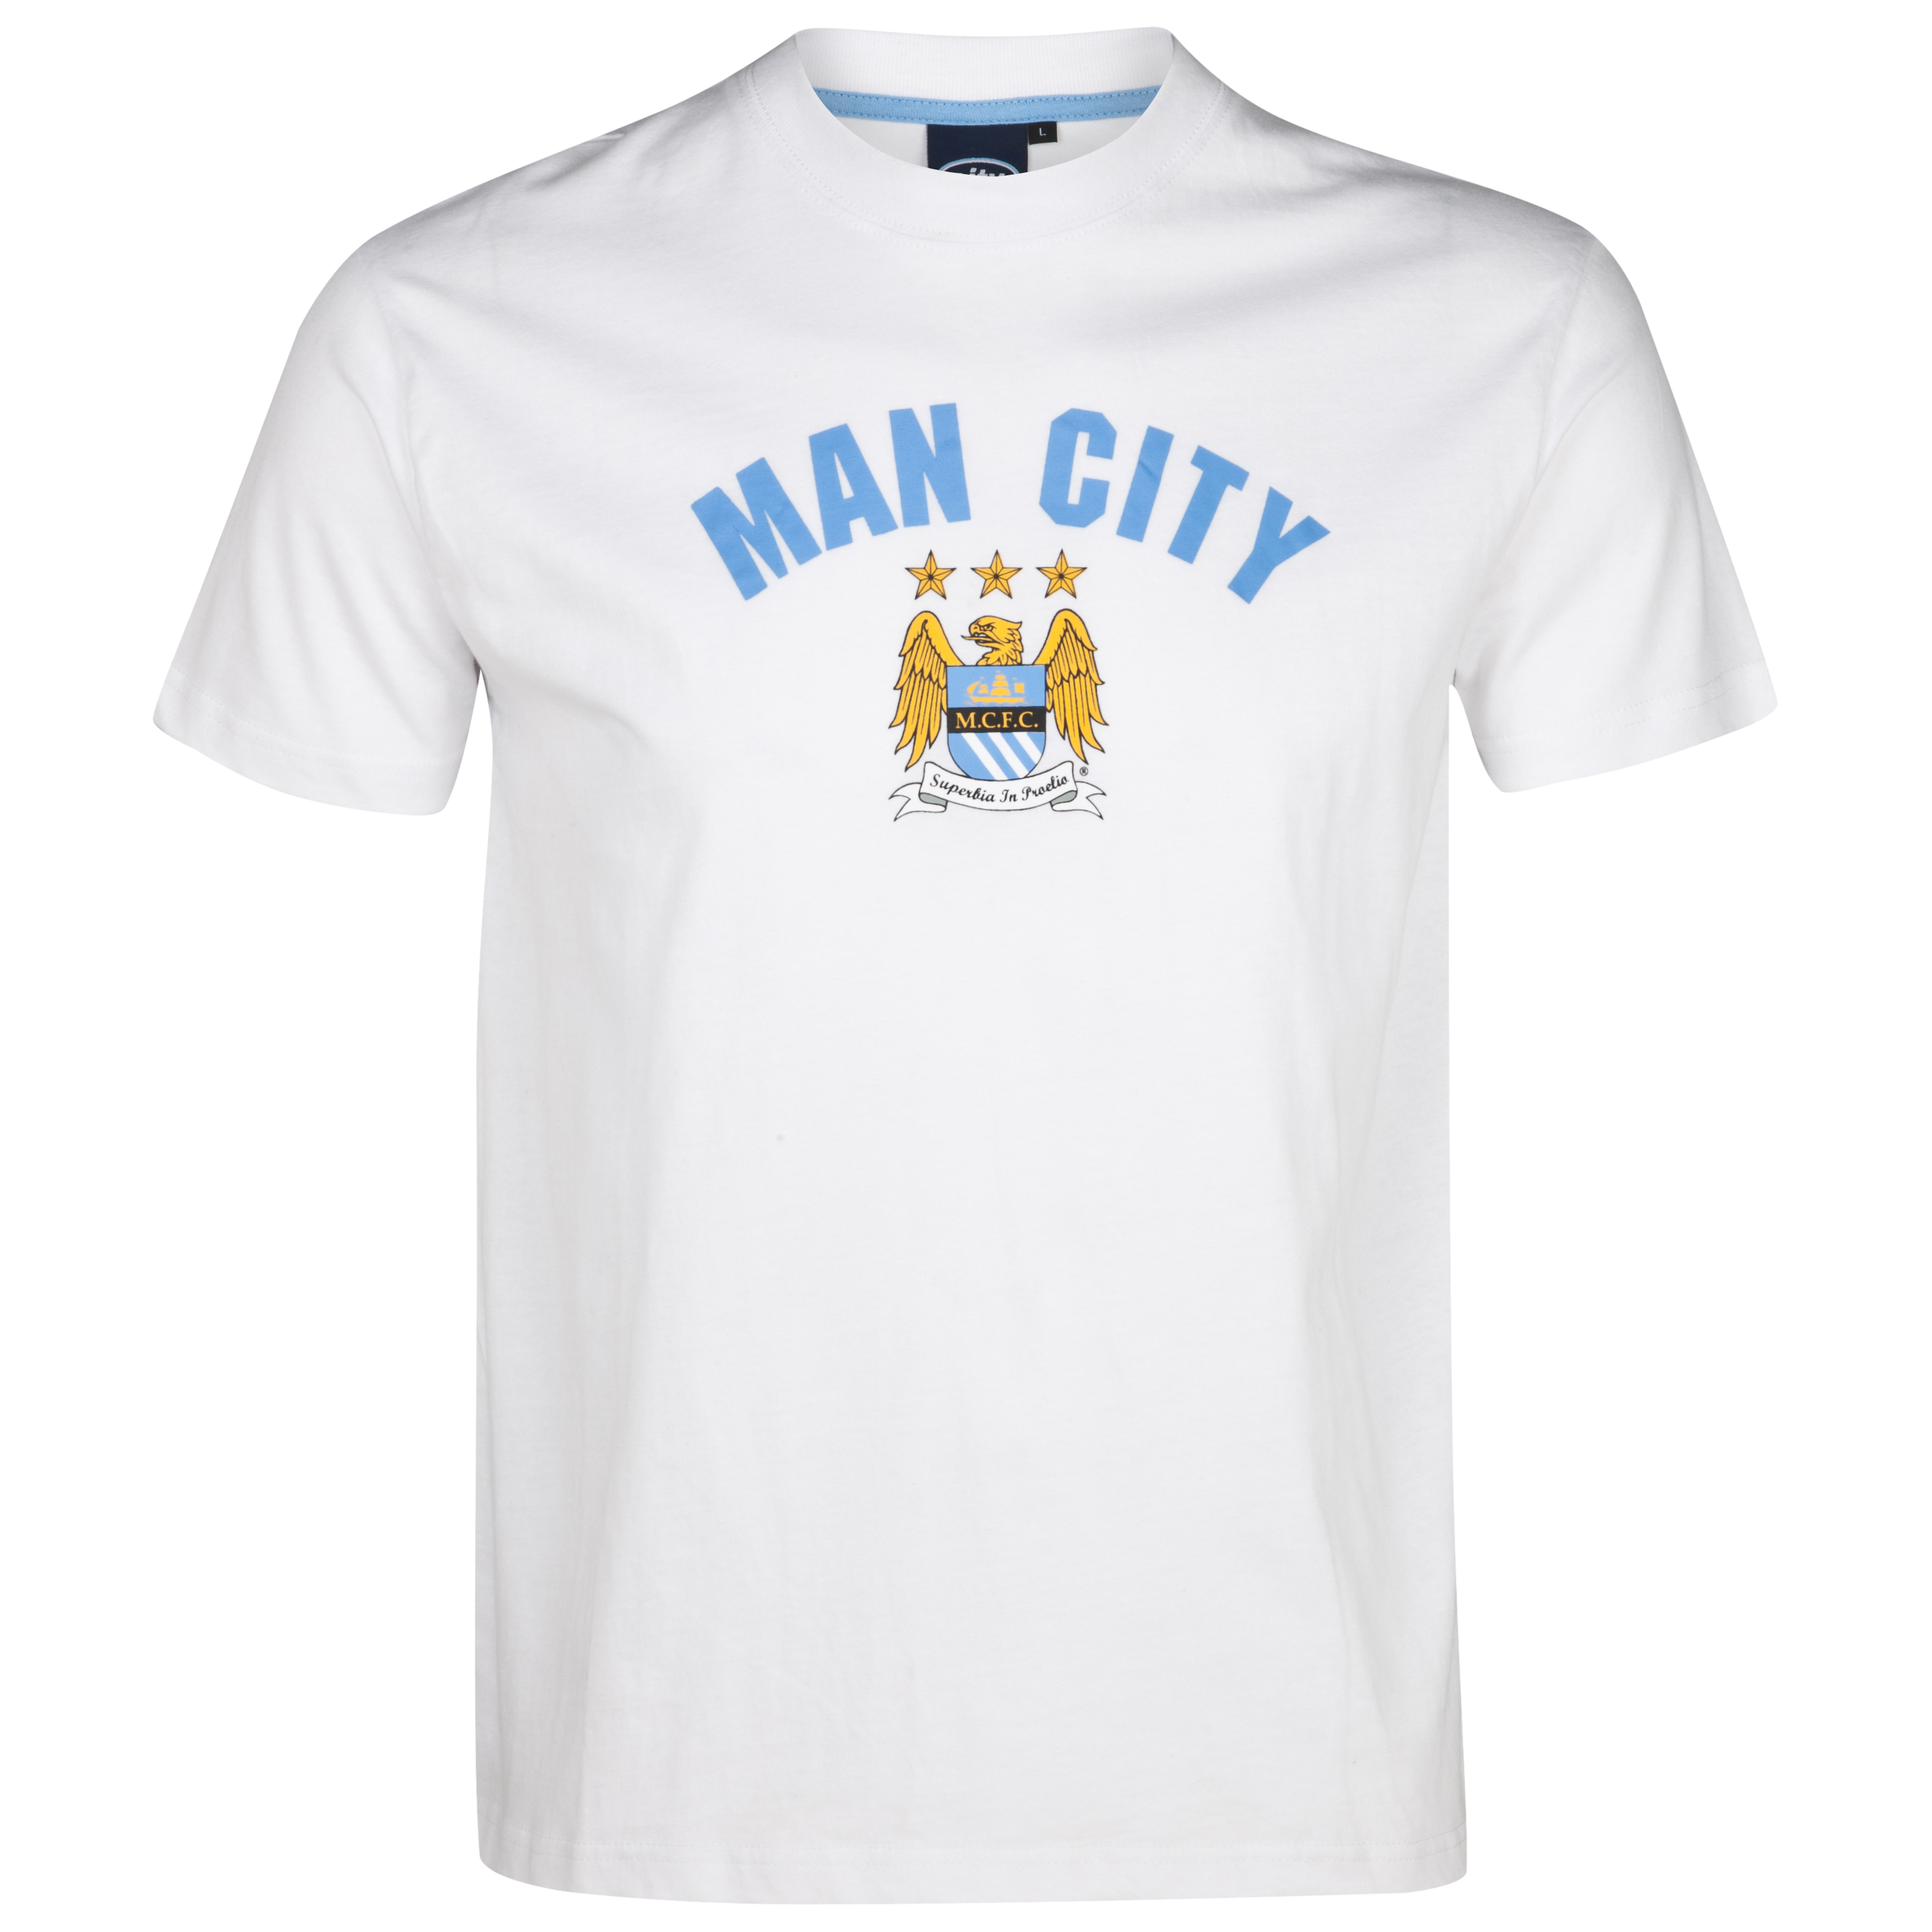 Manchester City Essential Staley T-Shirt - White - Older Boys